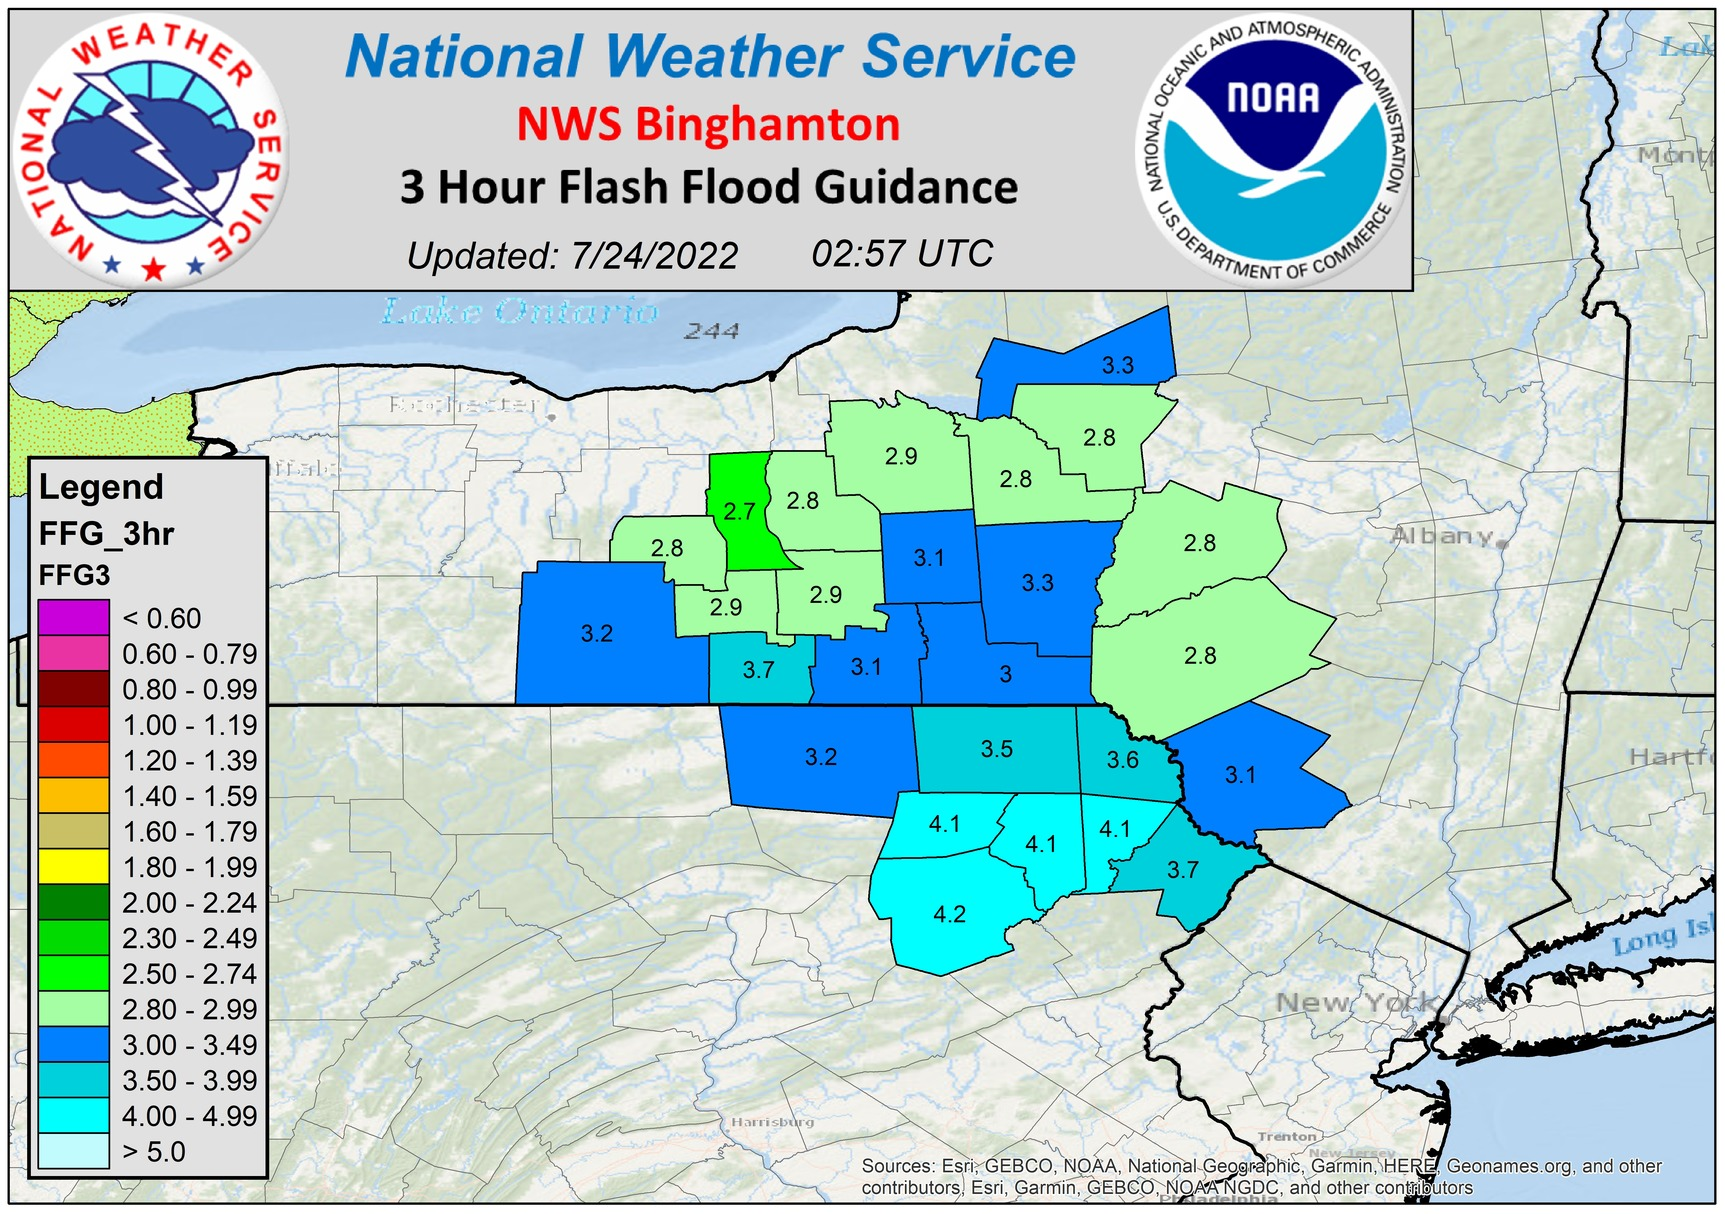 Three hour flash flood guidance.